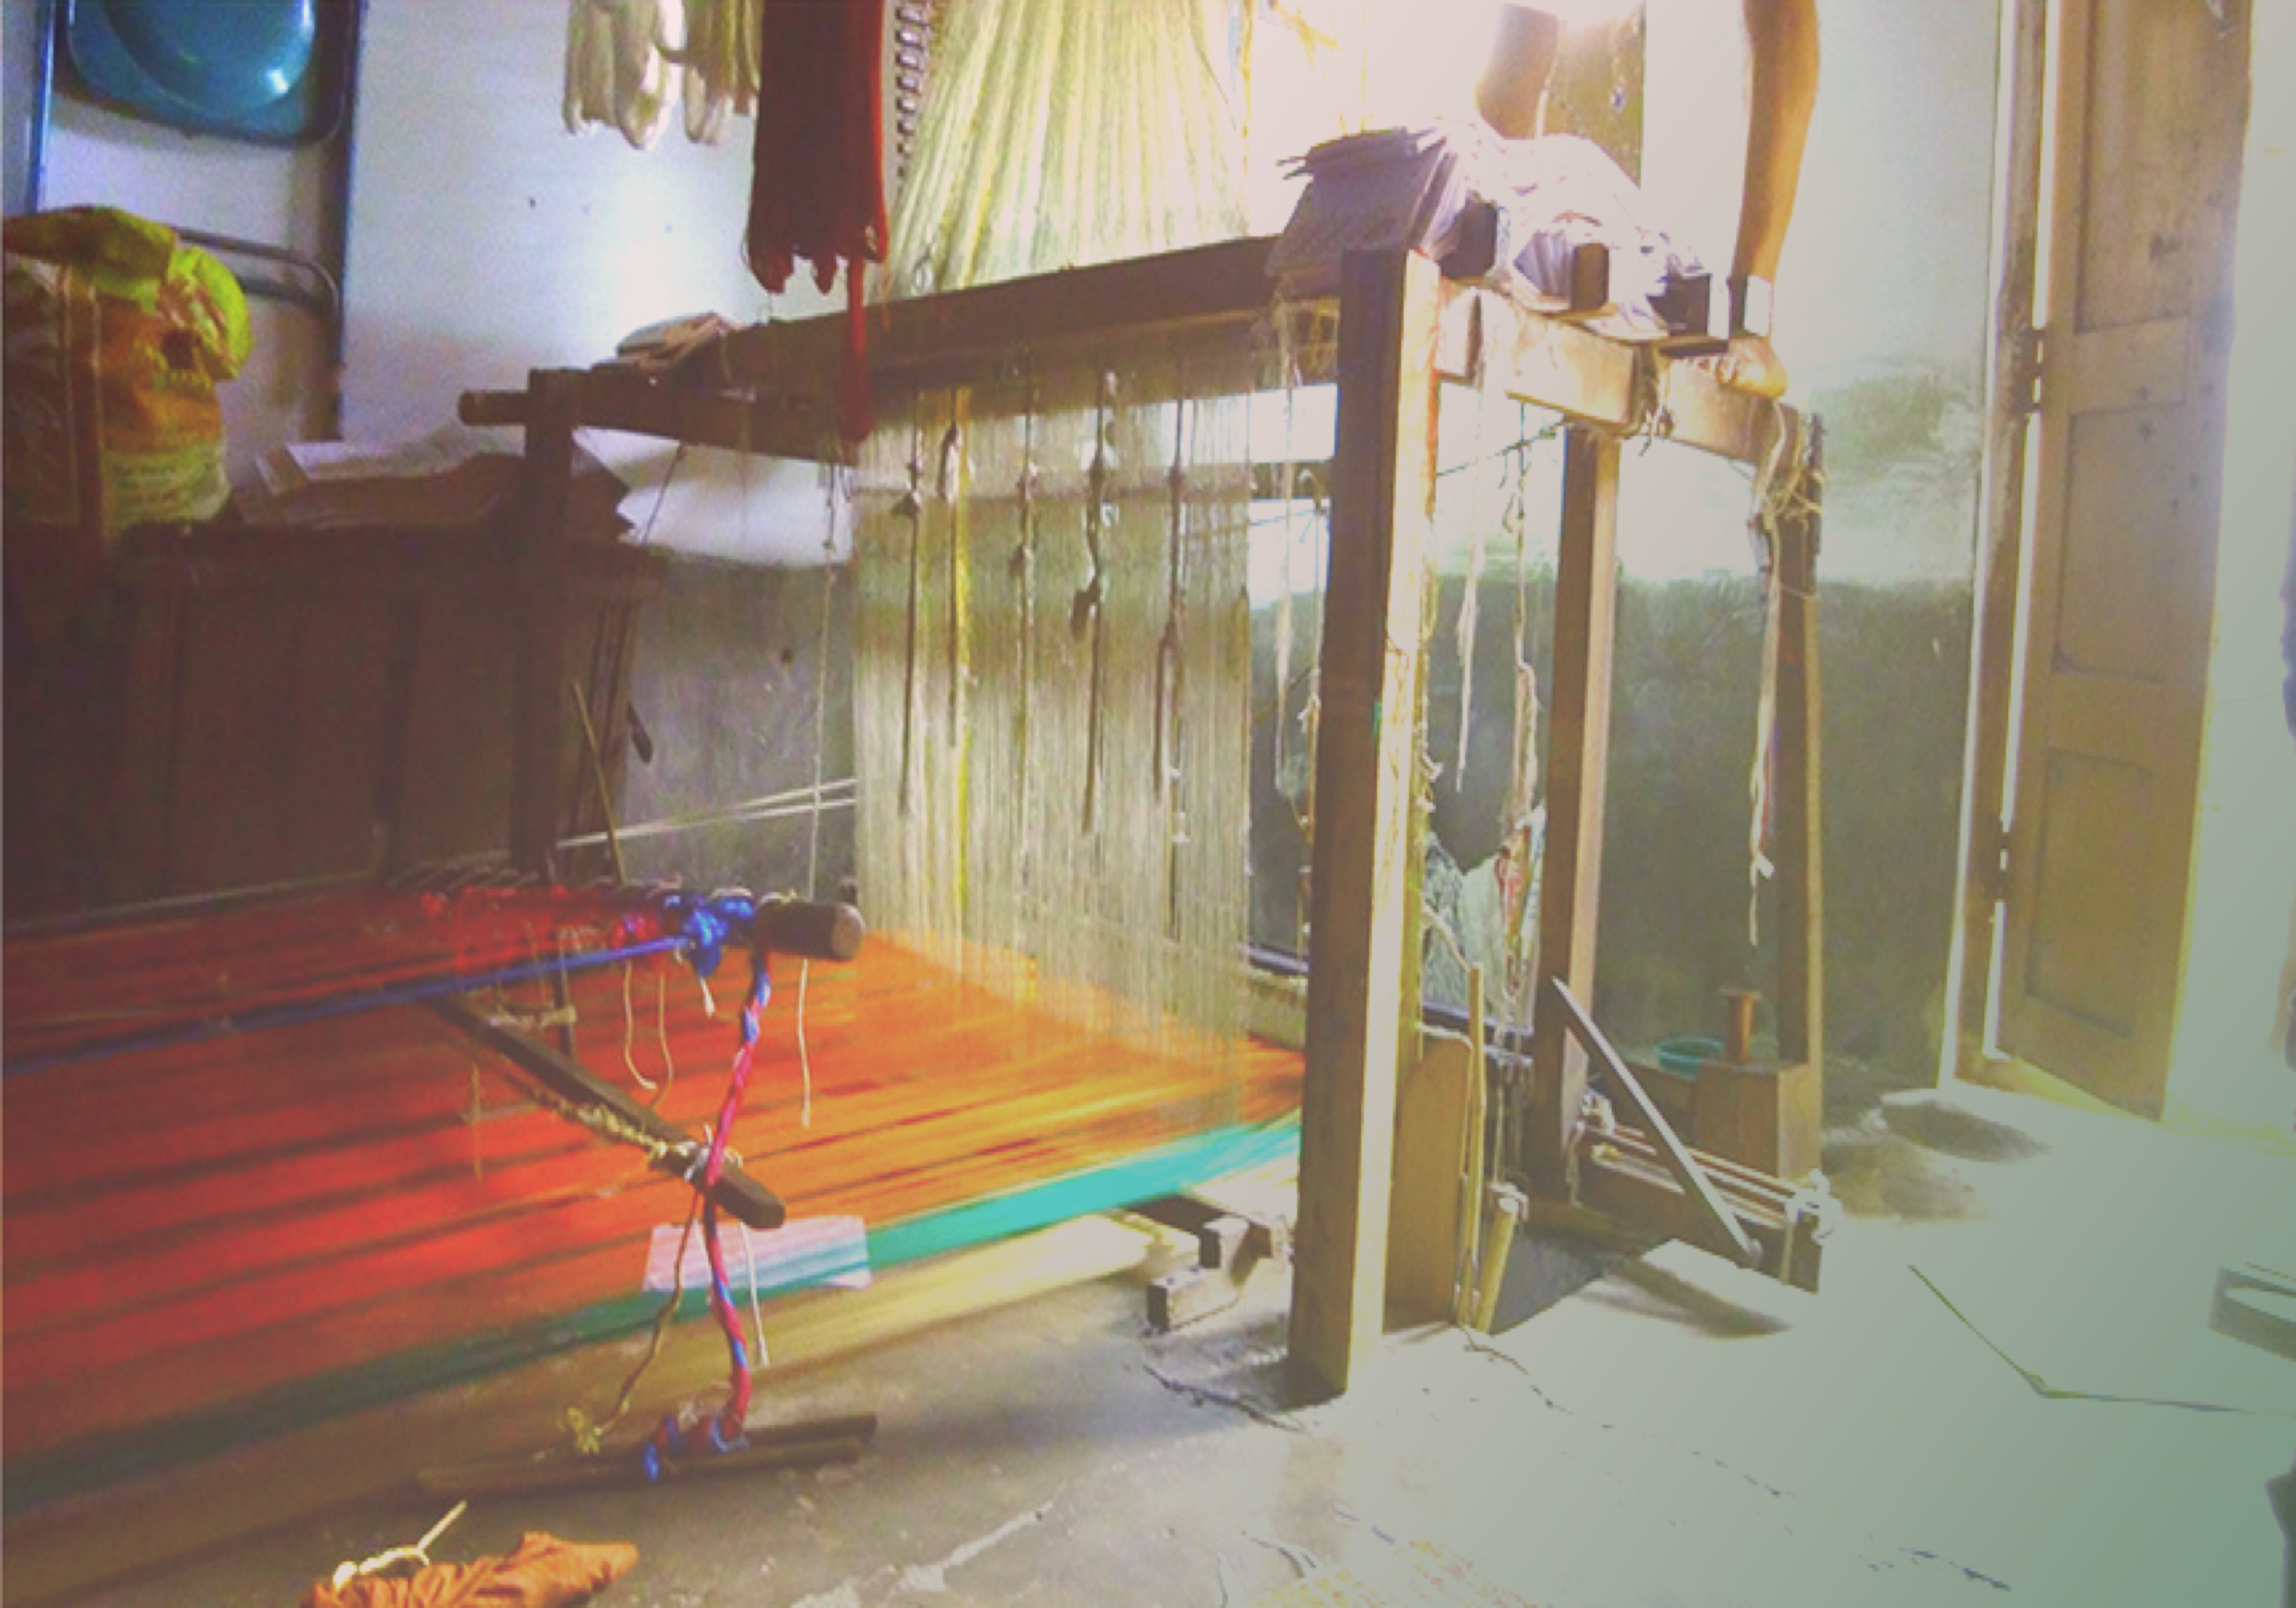 Image above : an orange hand-loom saree with green border in progress.